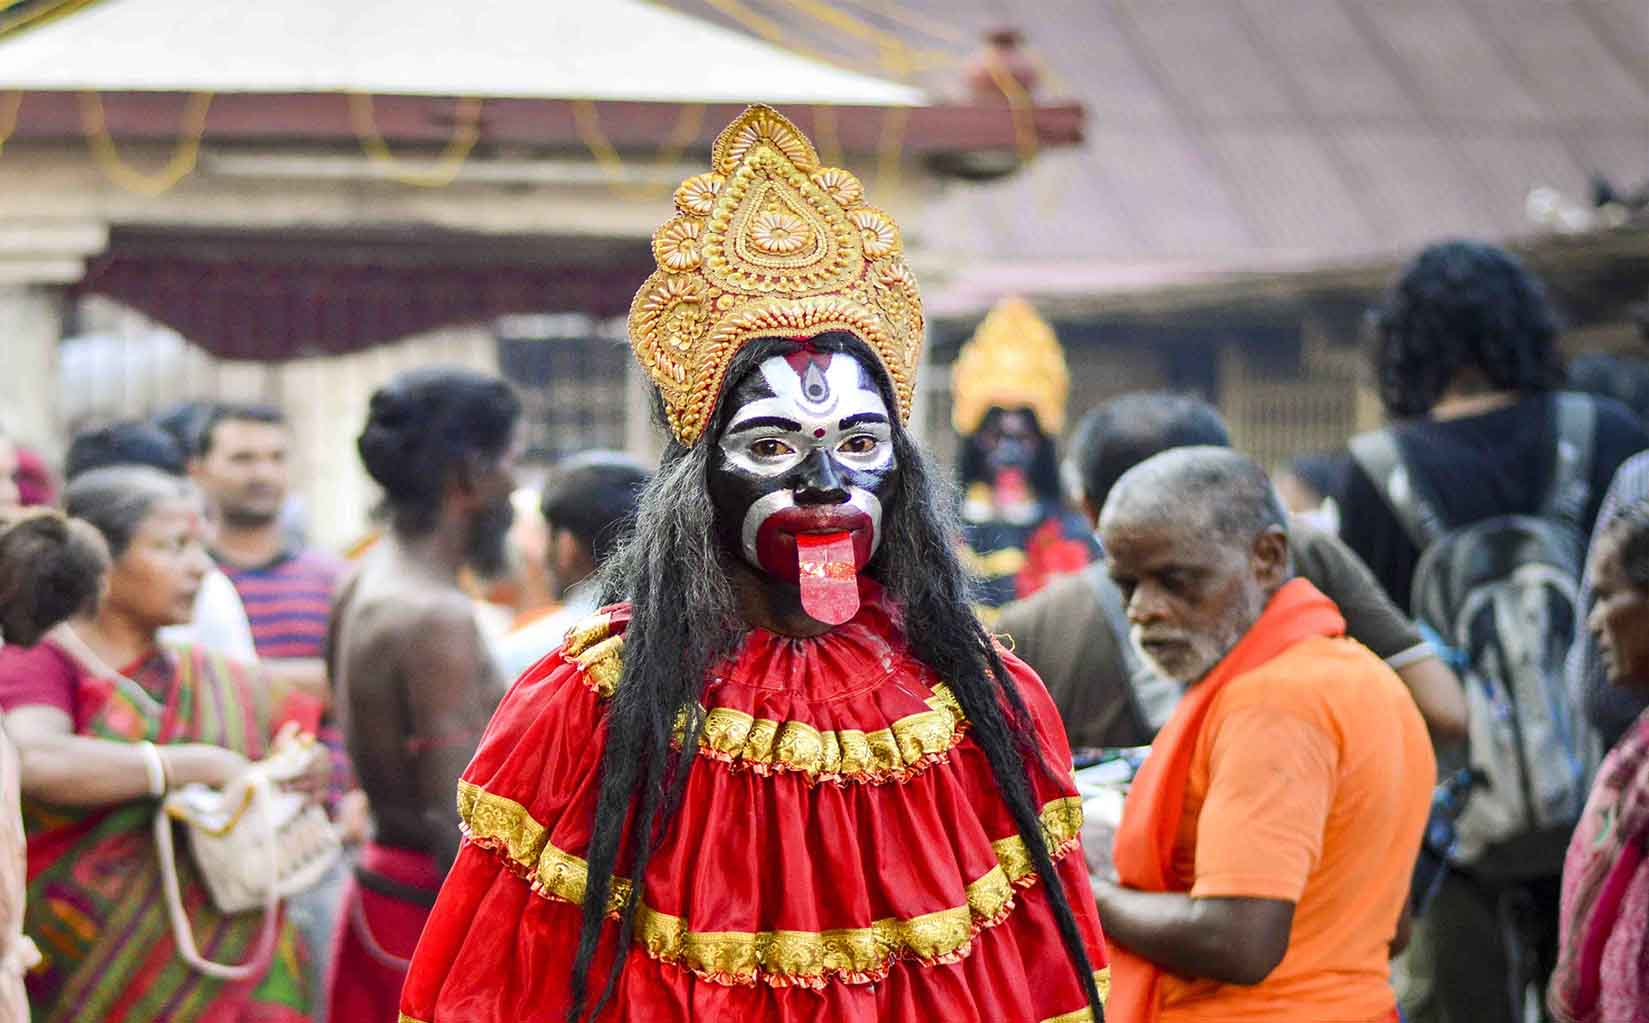 Ambubachi Mela - Celebrating the Goddess Who Bleeds